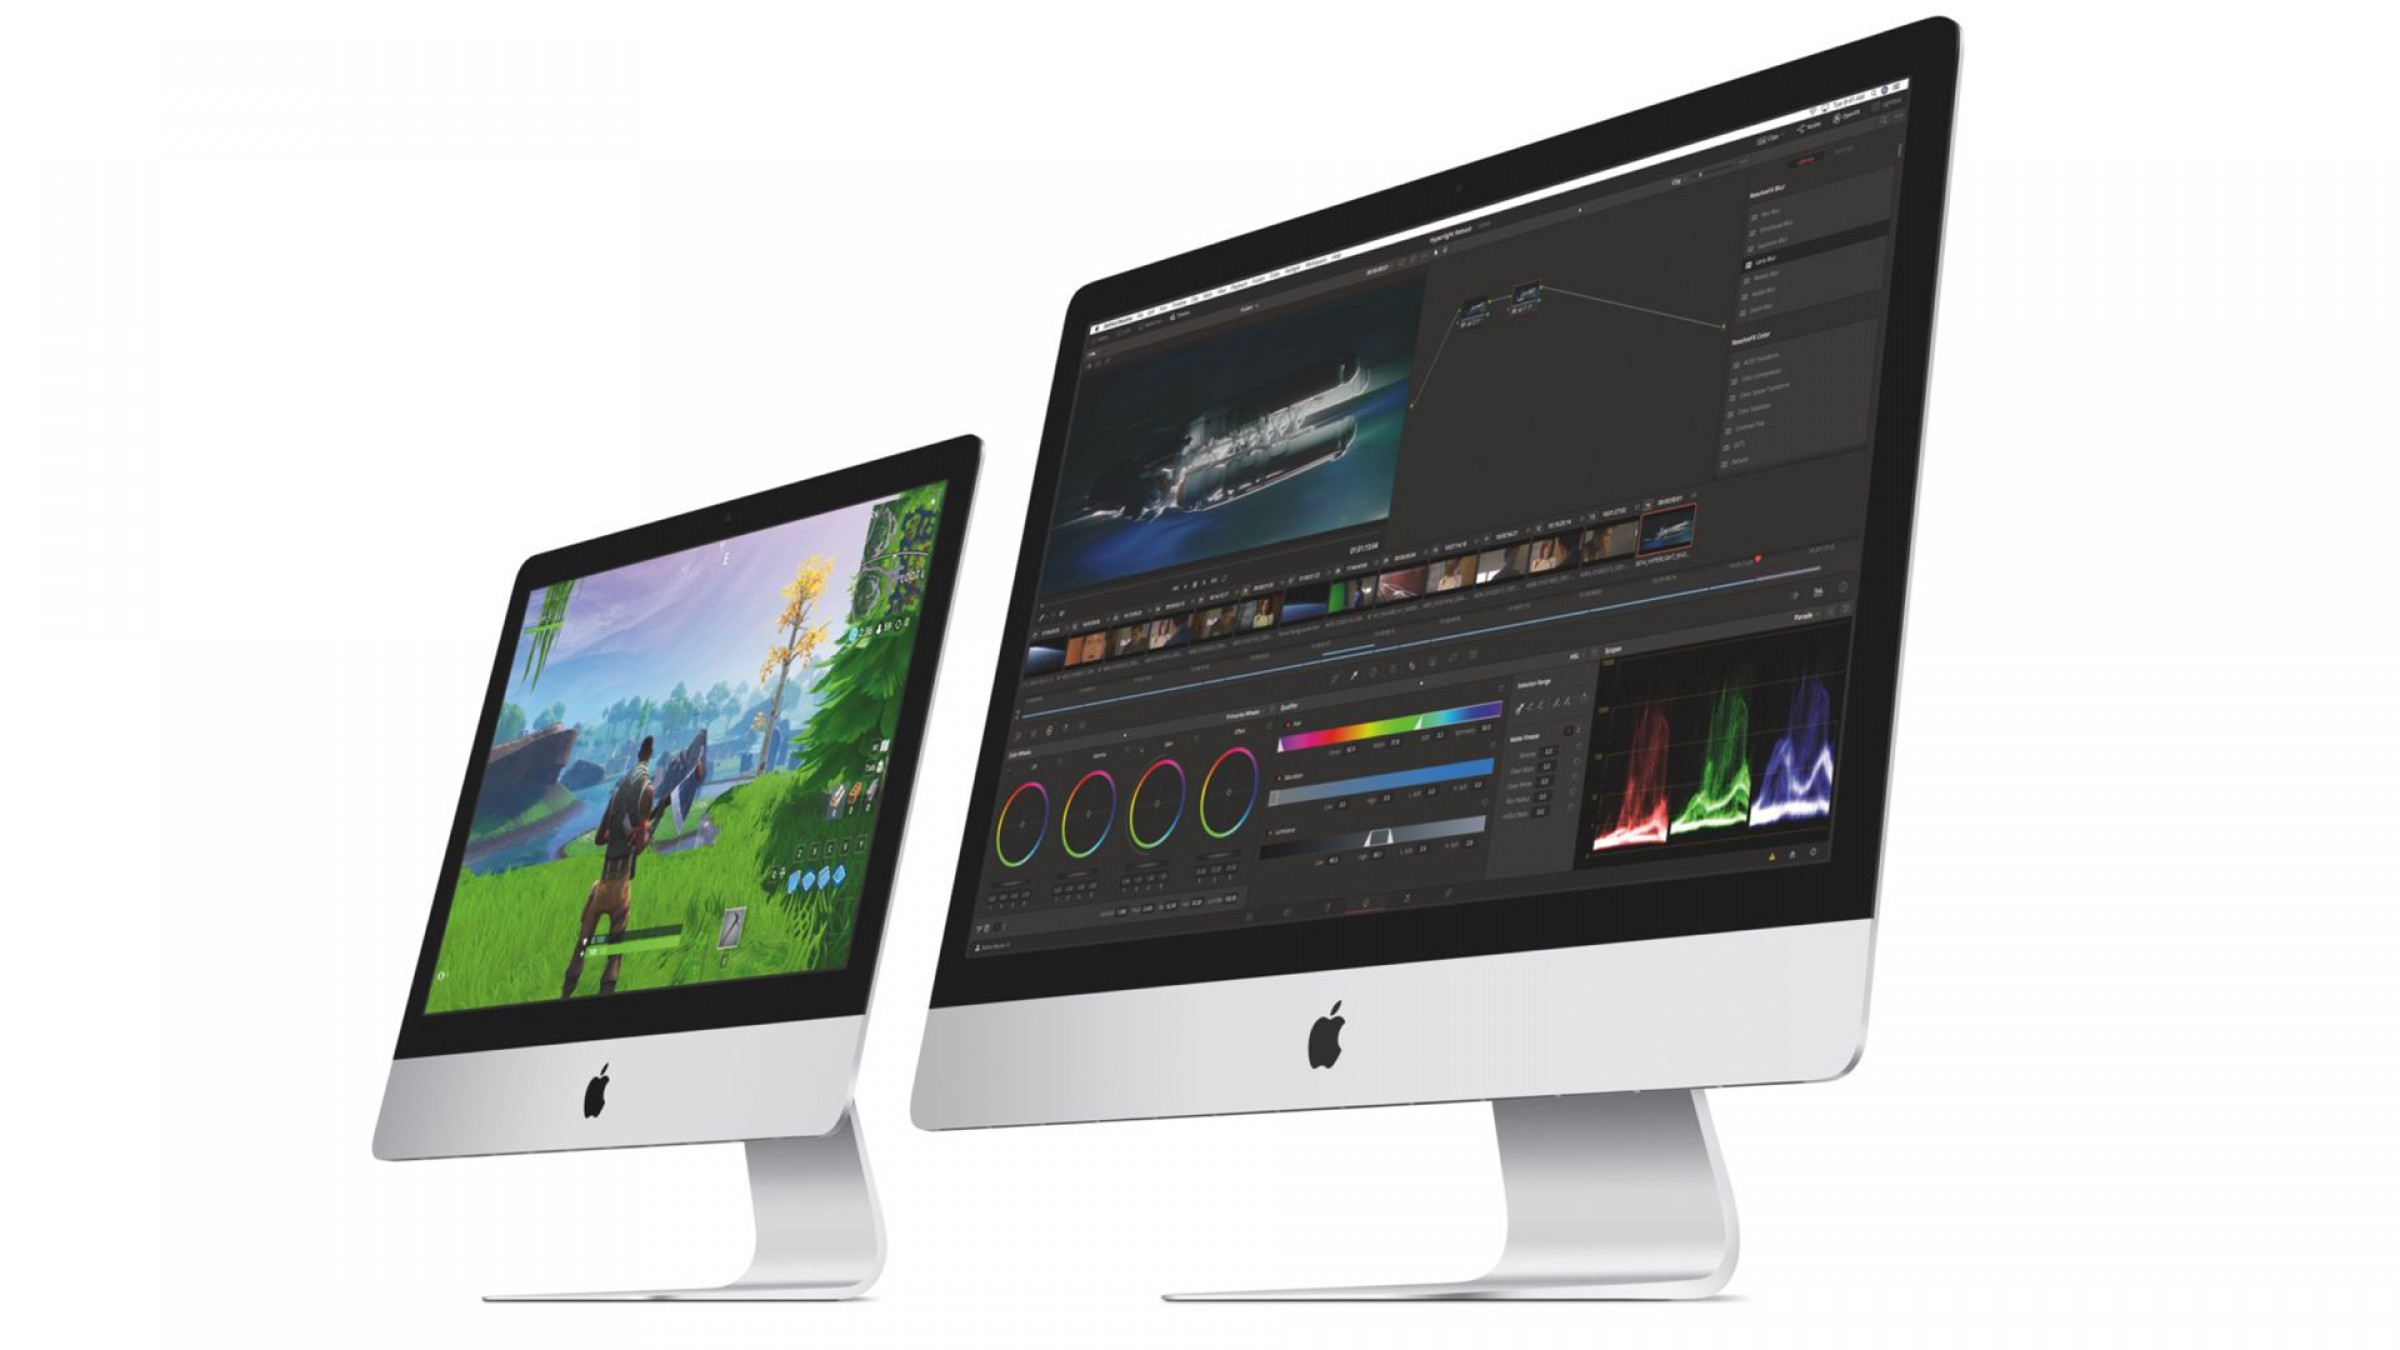 Apple Unveils New iMacs with Faster Graphics and Processing Performance